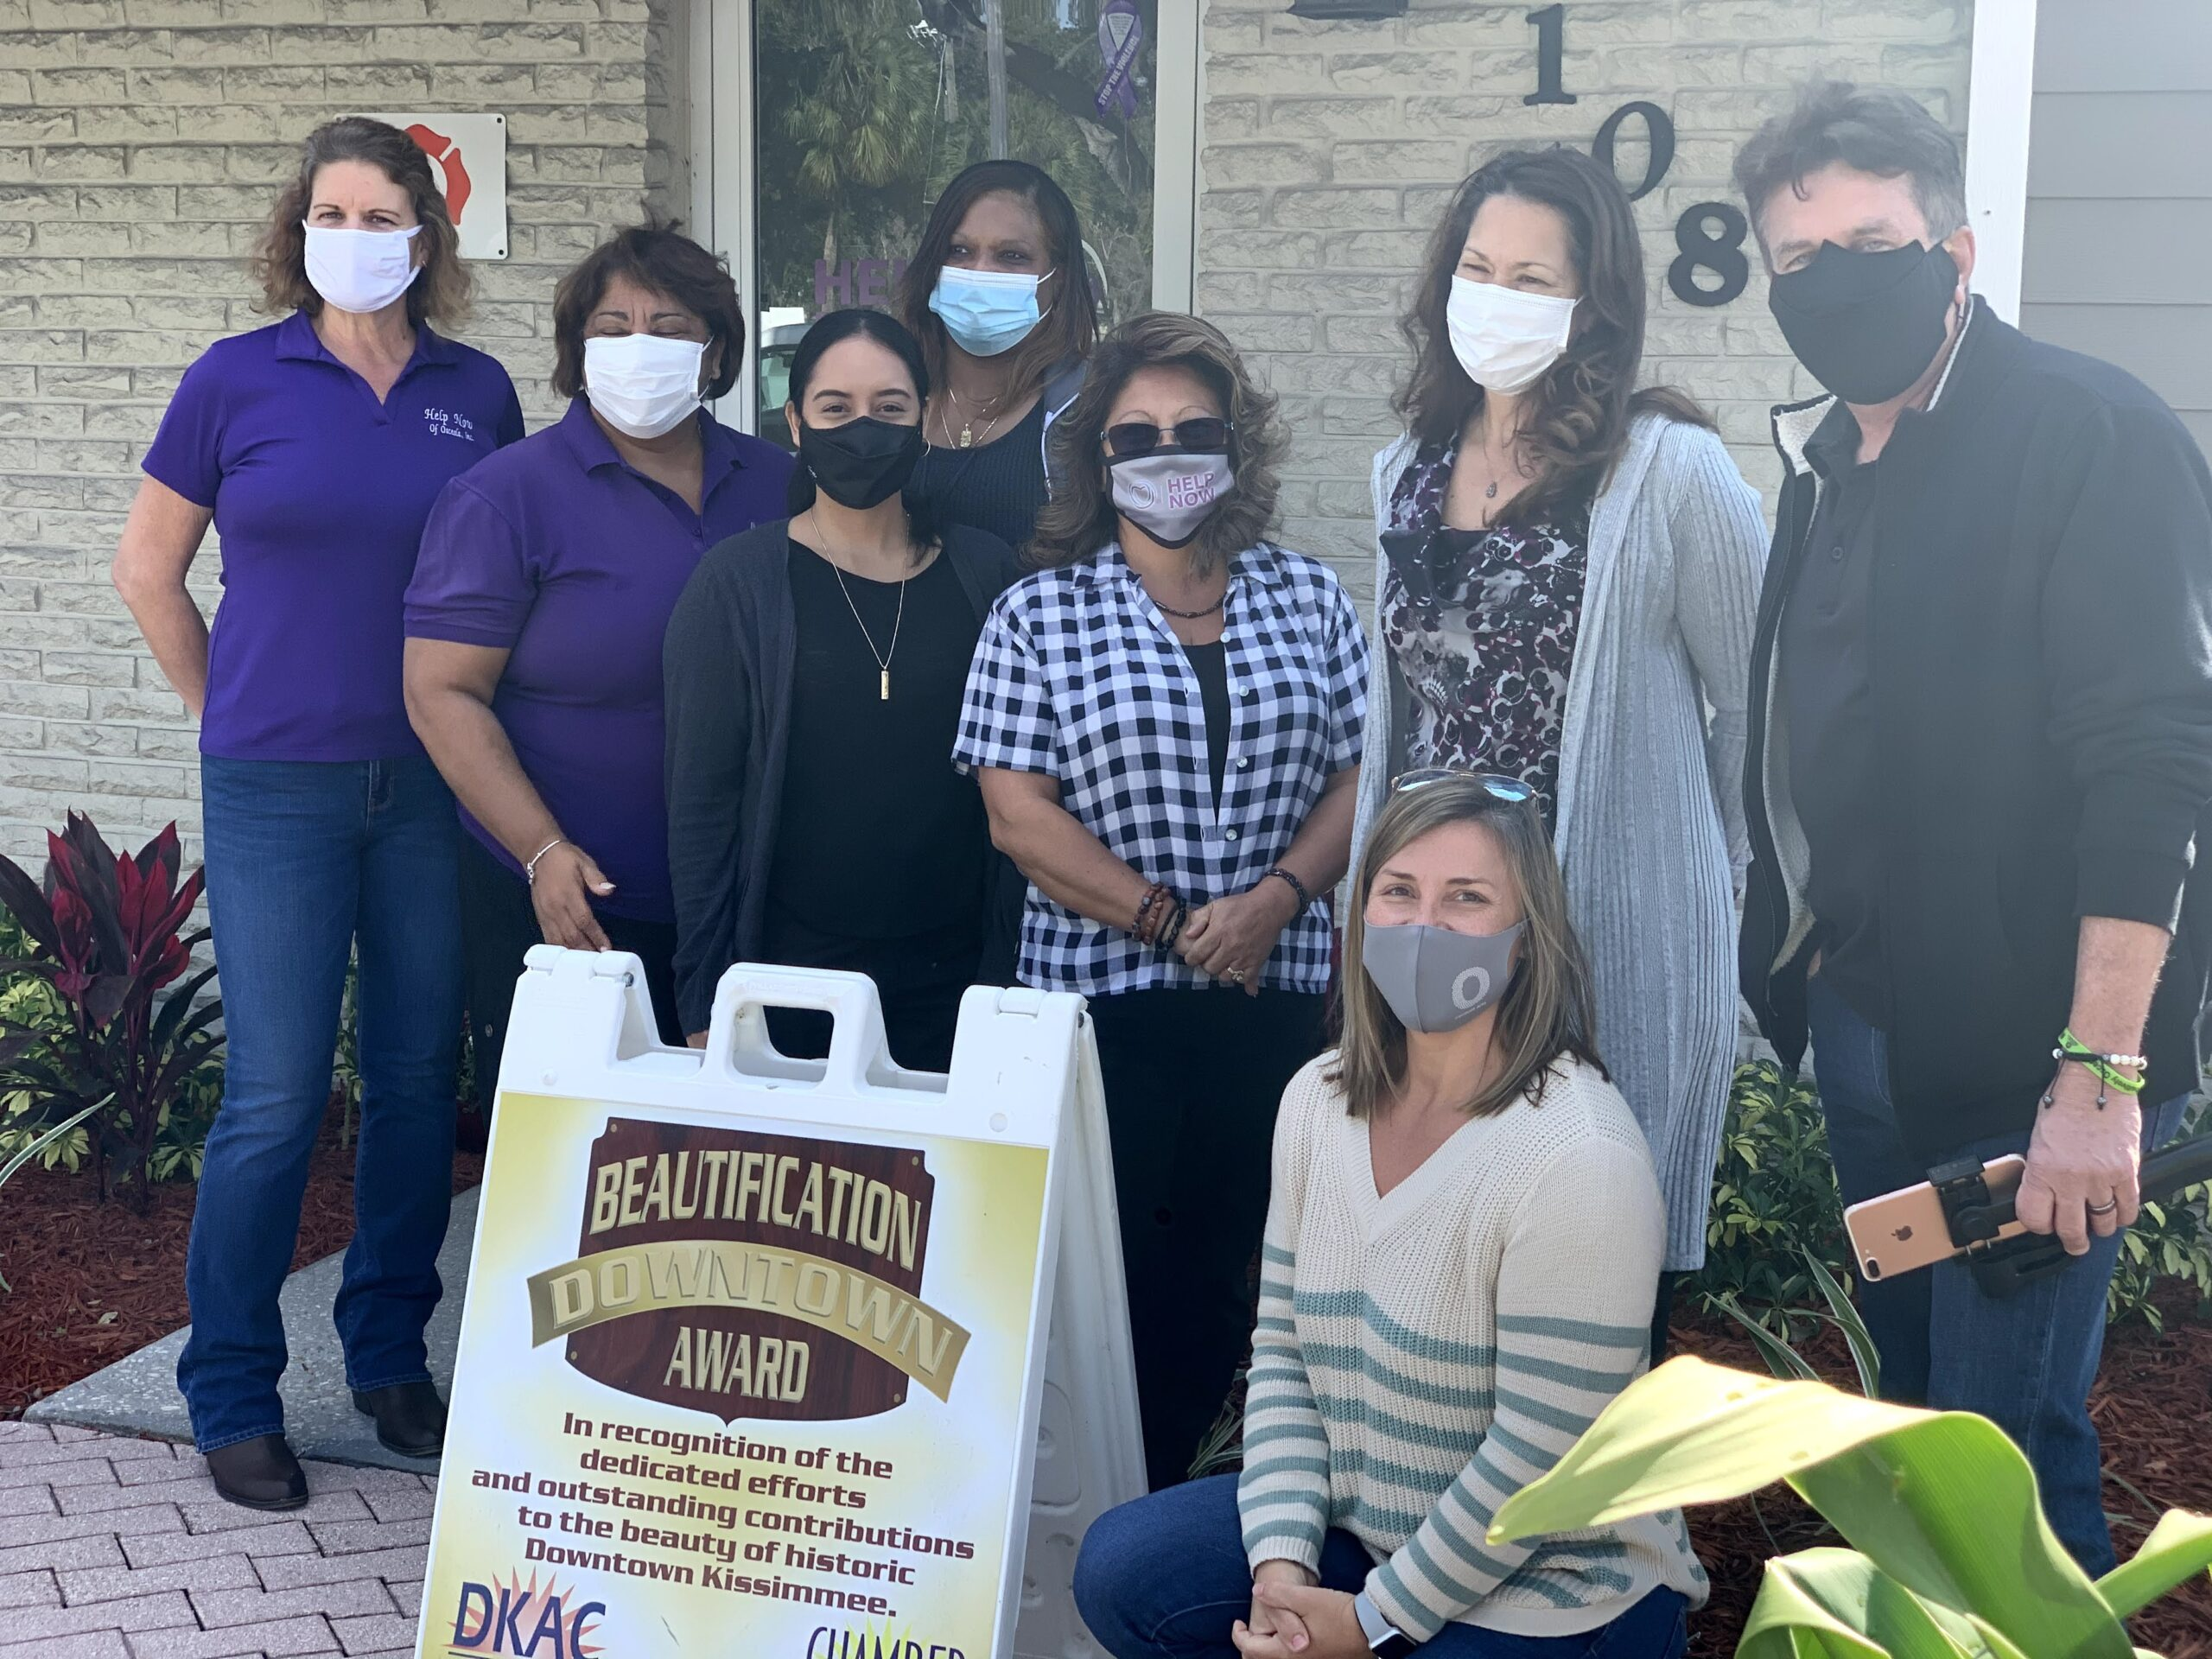 DKAC Honors Help Now Of Osceola With January/February Downtown Beautification Award